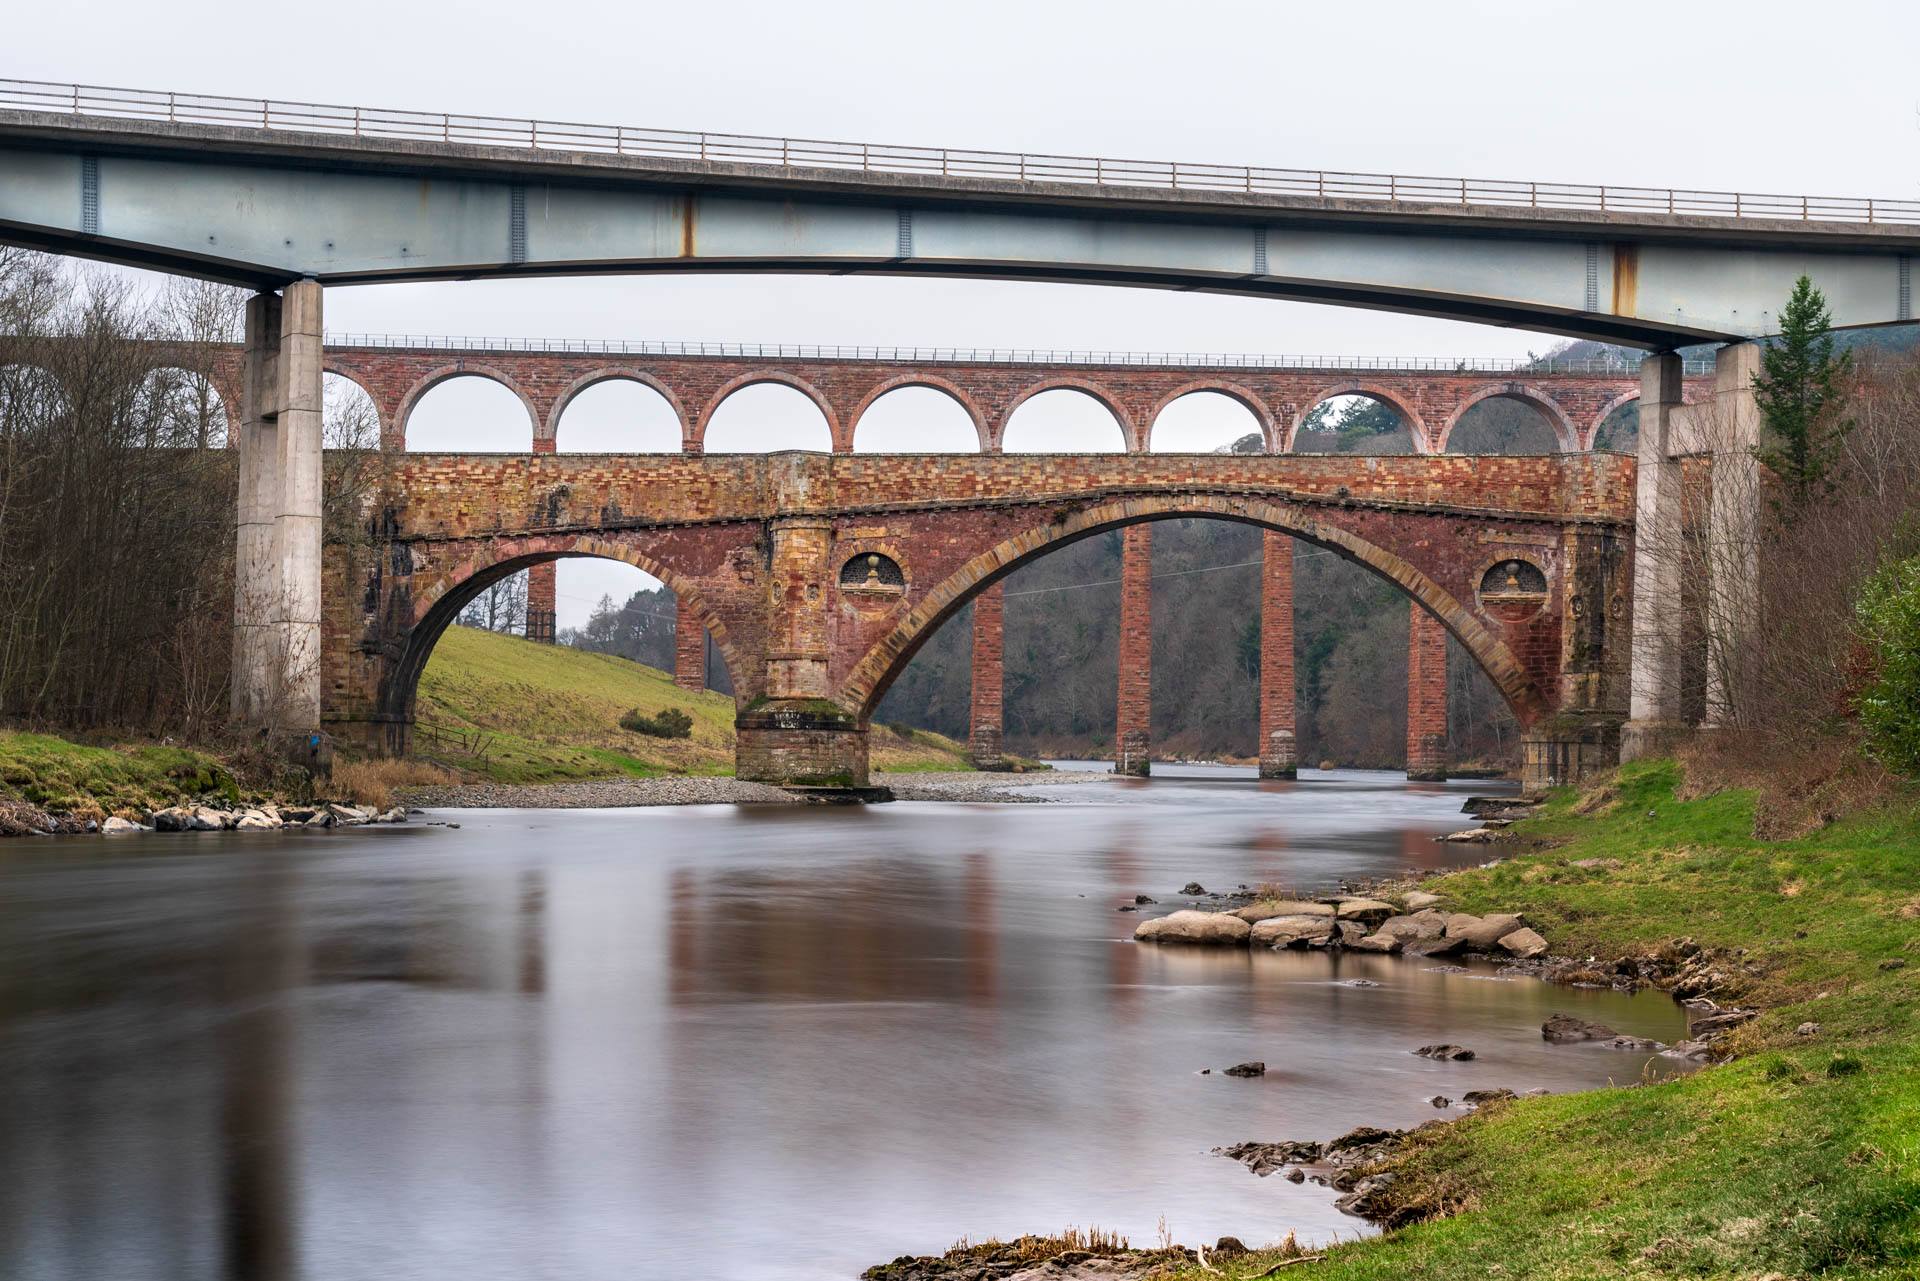 Leaderfoot Viaduct viewpoint 4   f/8 30sec ISO-400 60mm